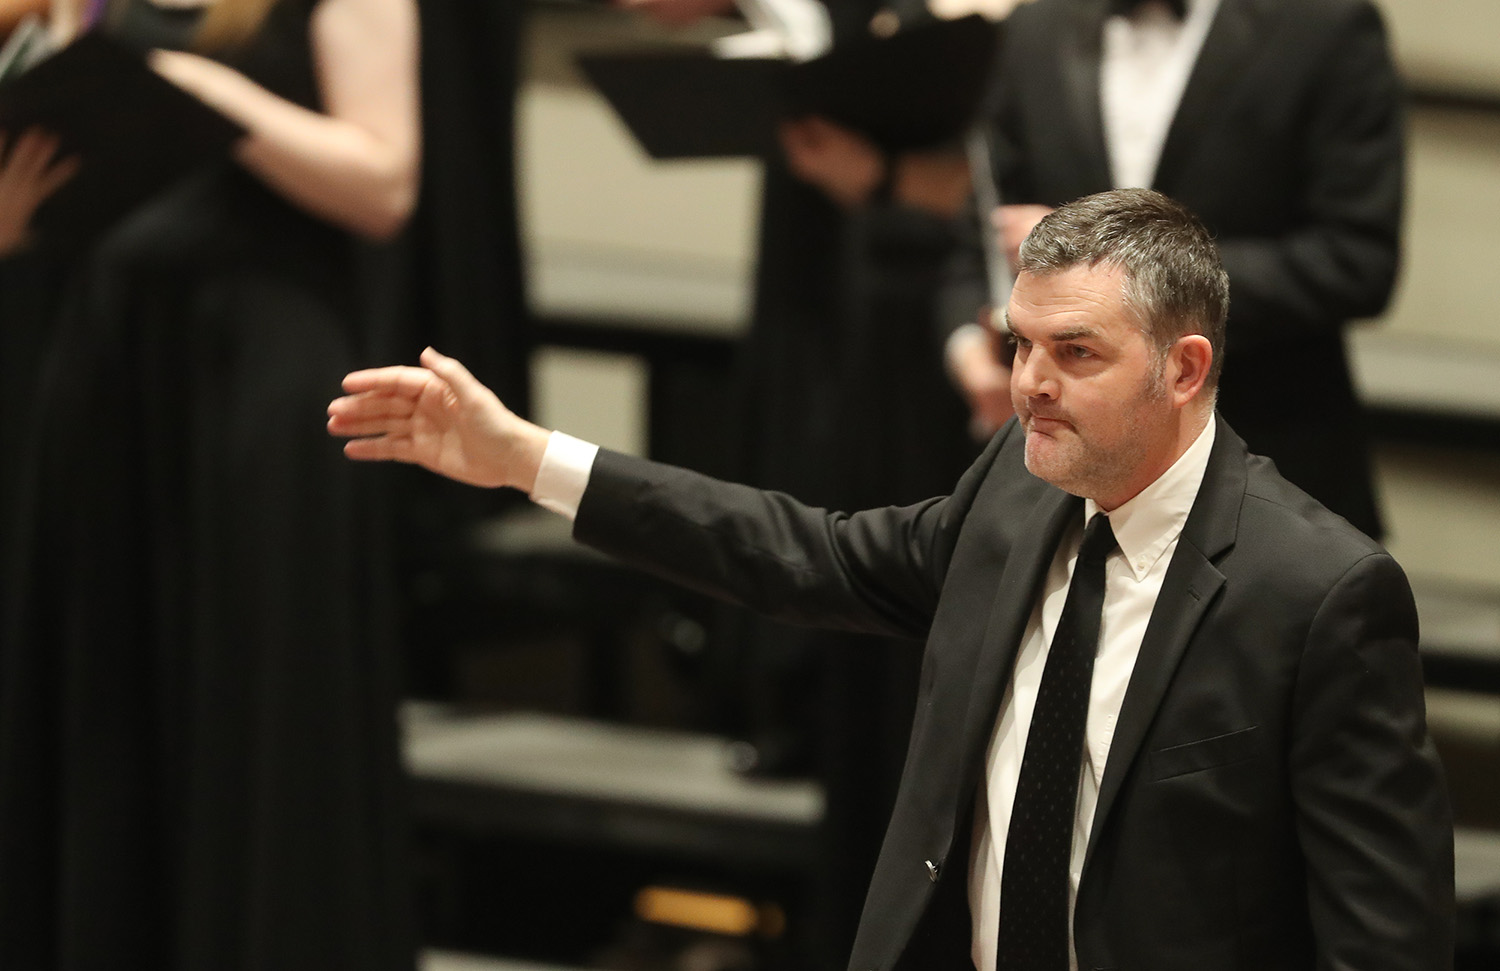 Director of choral activities John Petzet wants to showcase the UNK choirs both locally and at the state level. (Photo by Corbey R. Dorsey, UNK Communications)